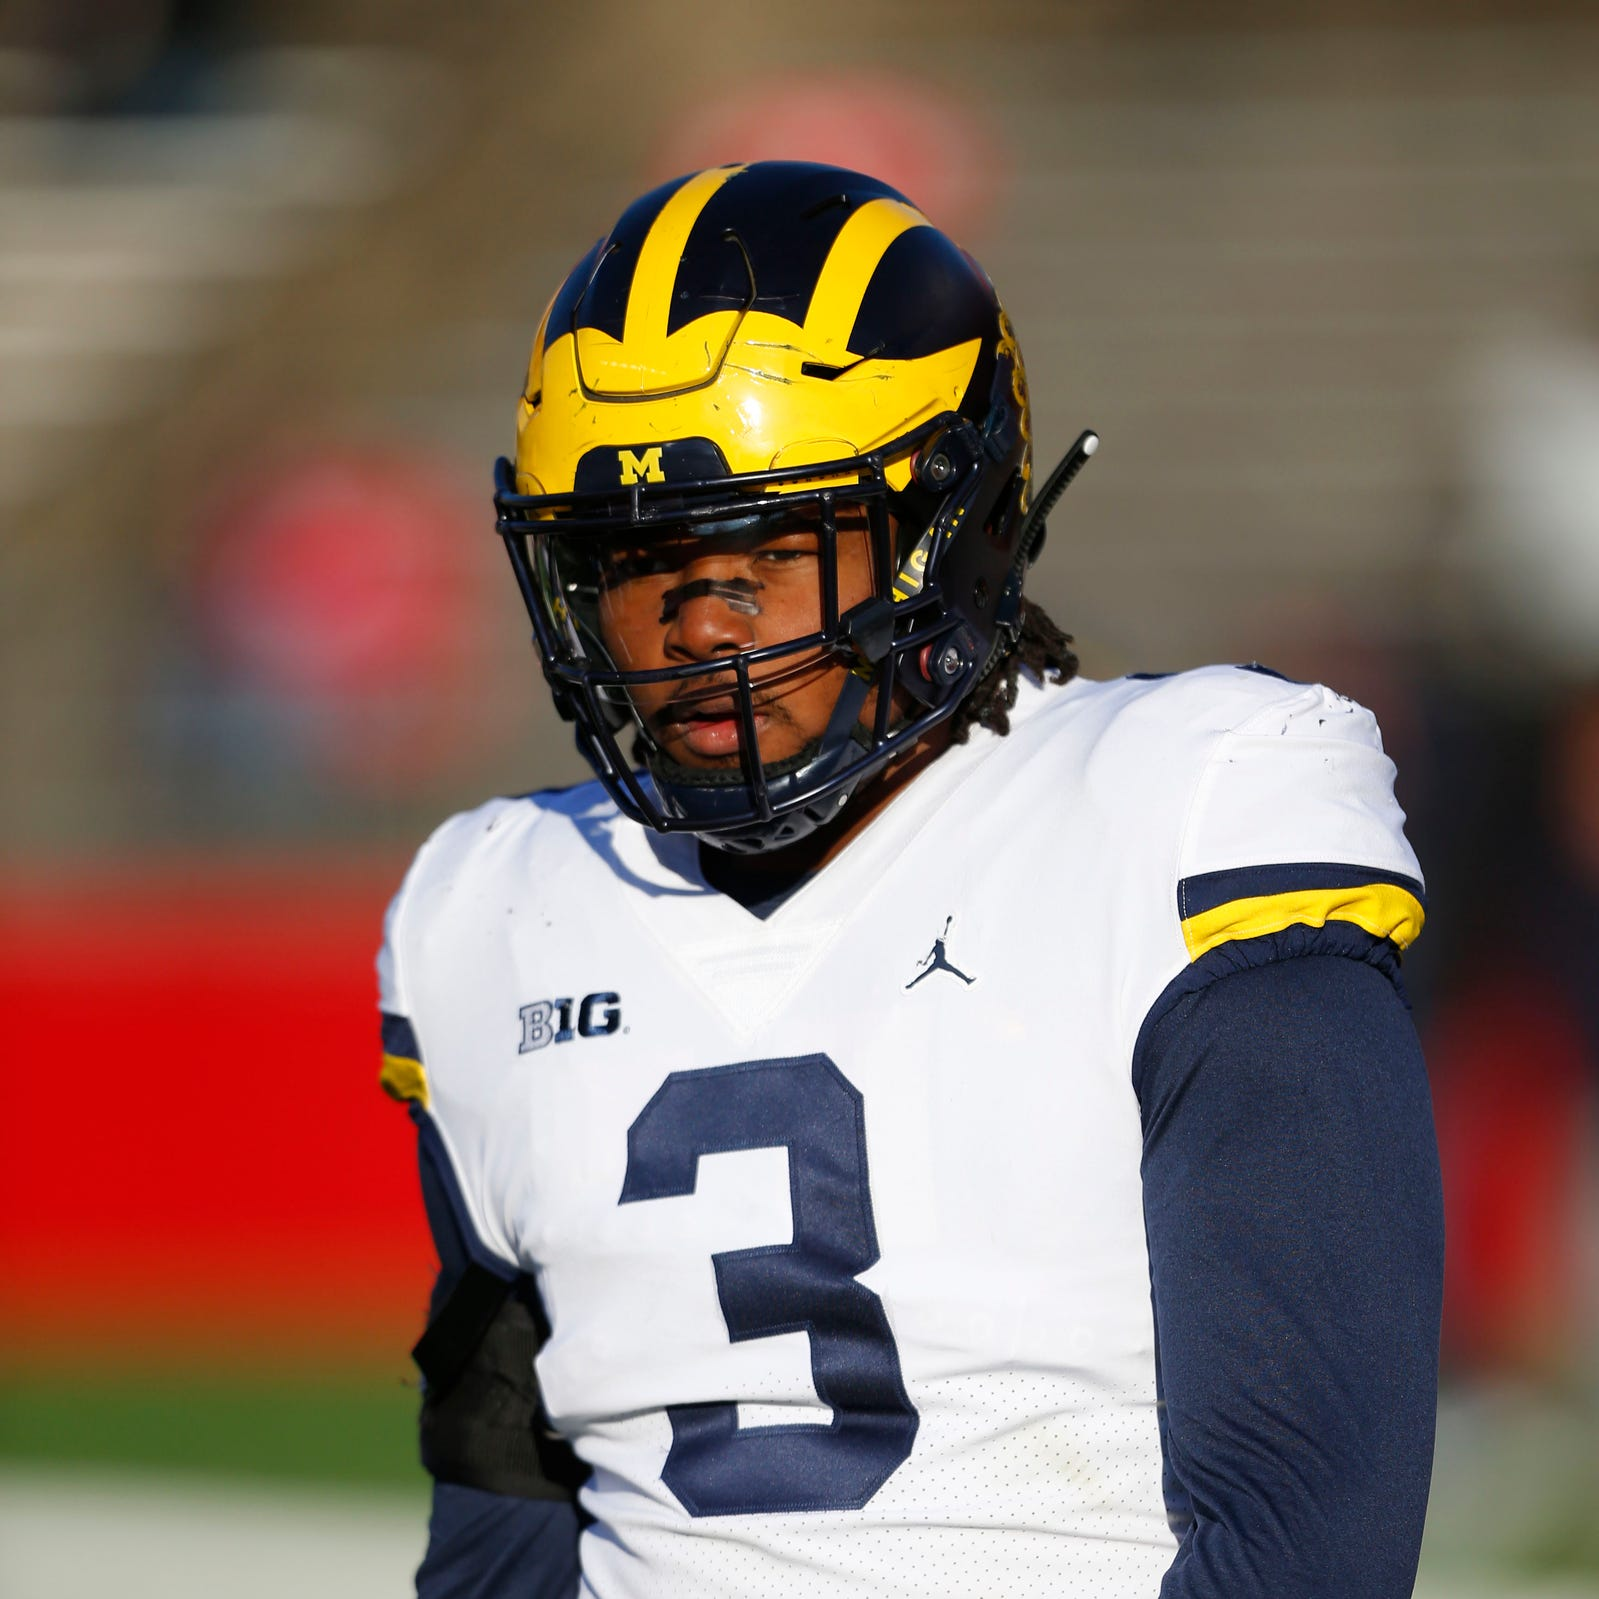 Michigan football pro day: Rashan Gary sits, Zach Gentry shines